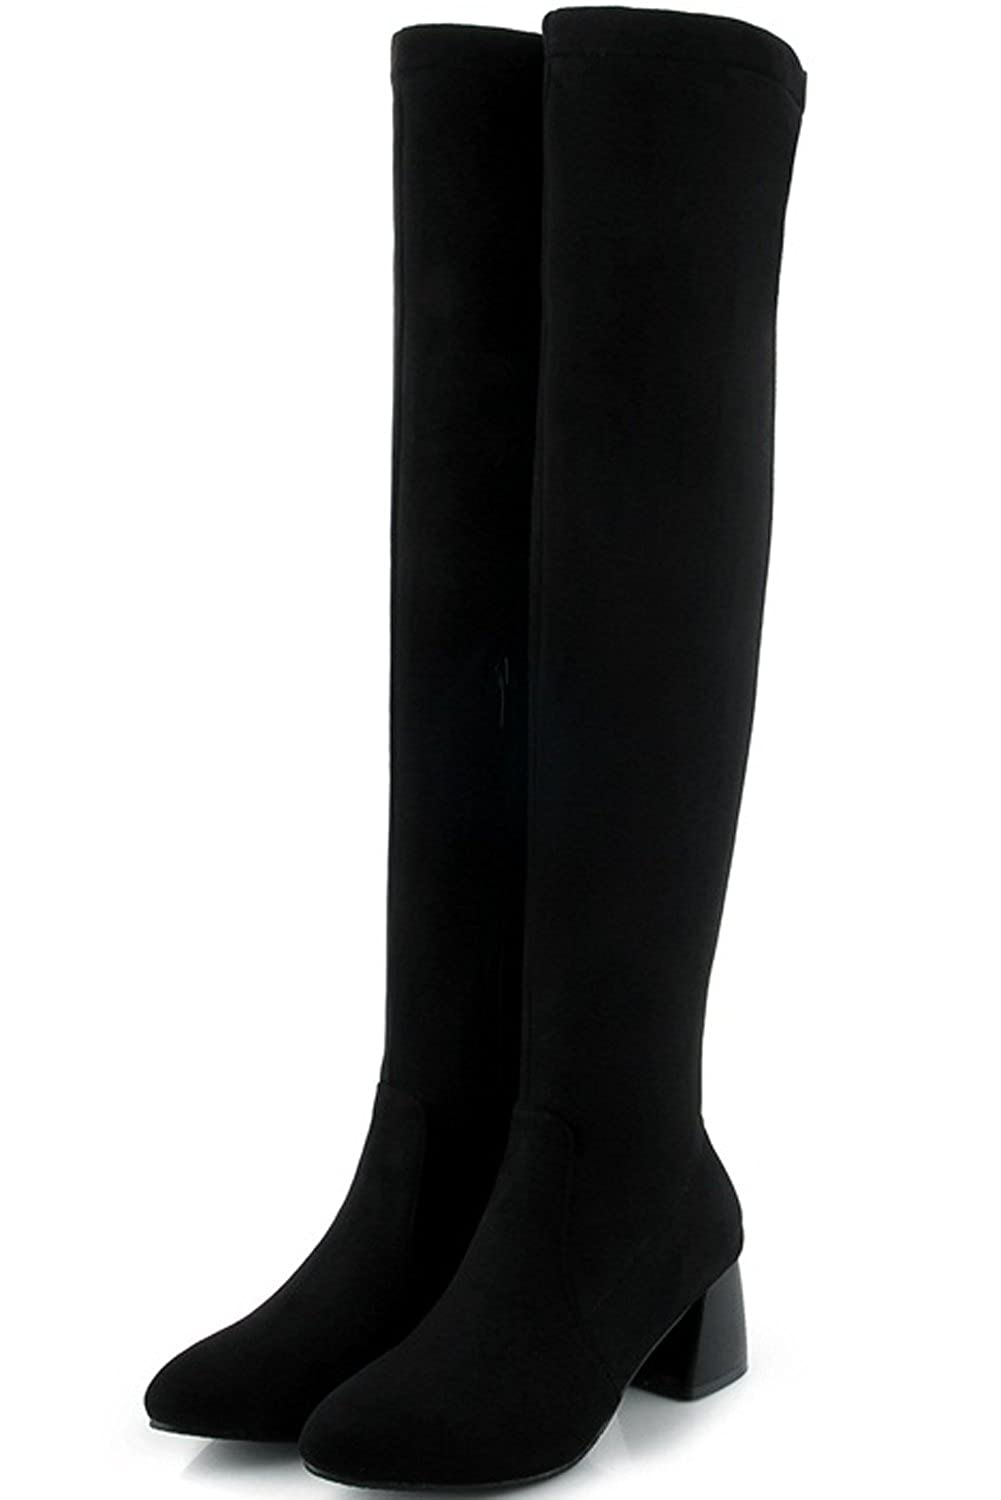 Bigtree Thigh High Boots Women Fall Winter Block Casual Faux Suede Zipper Comfortable Over The Knee Boots